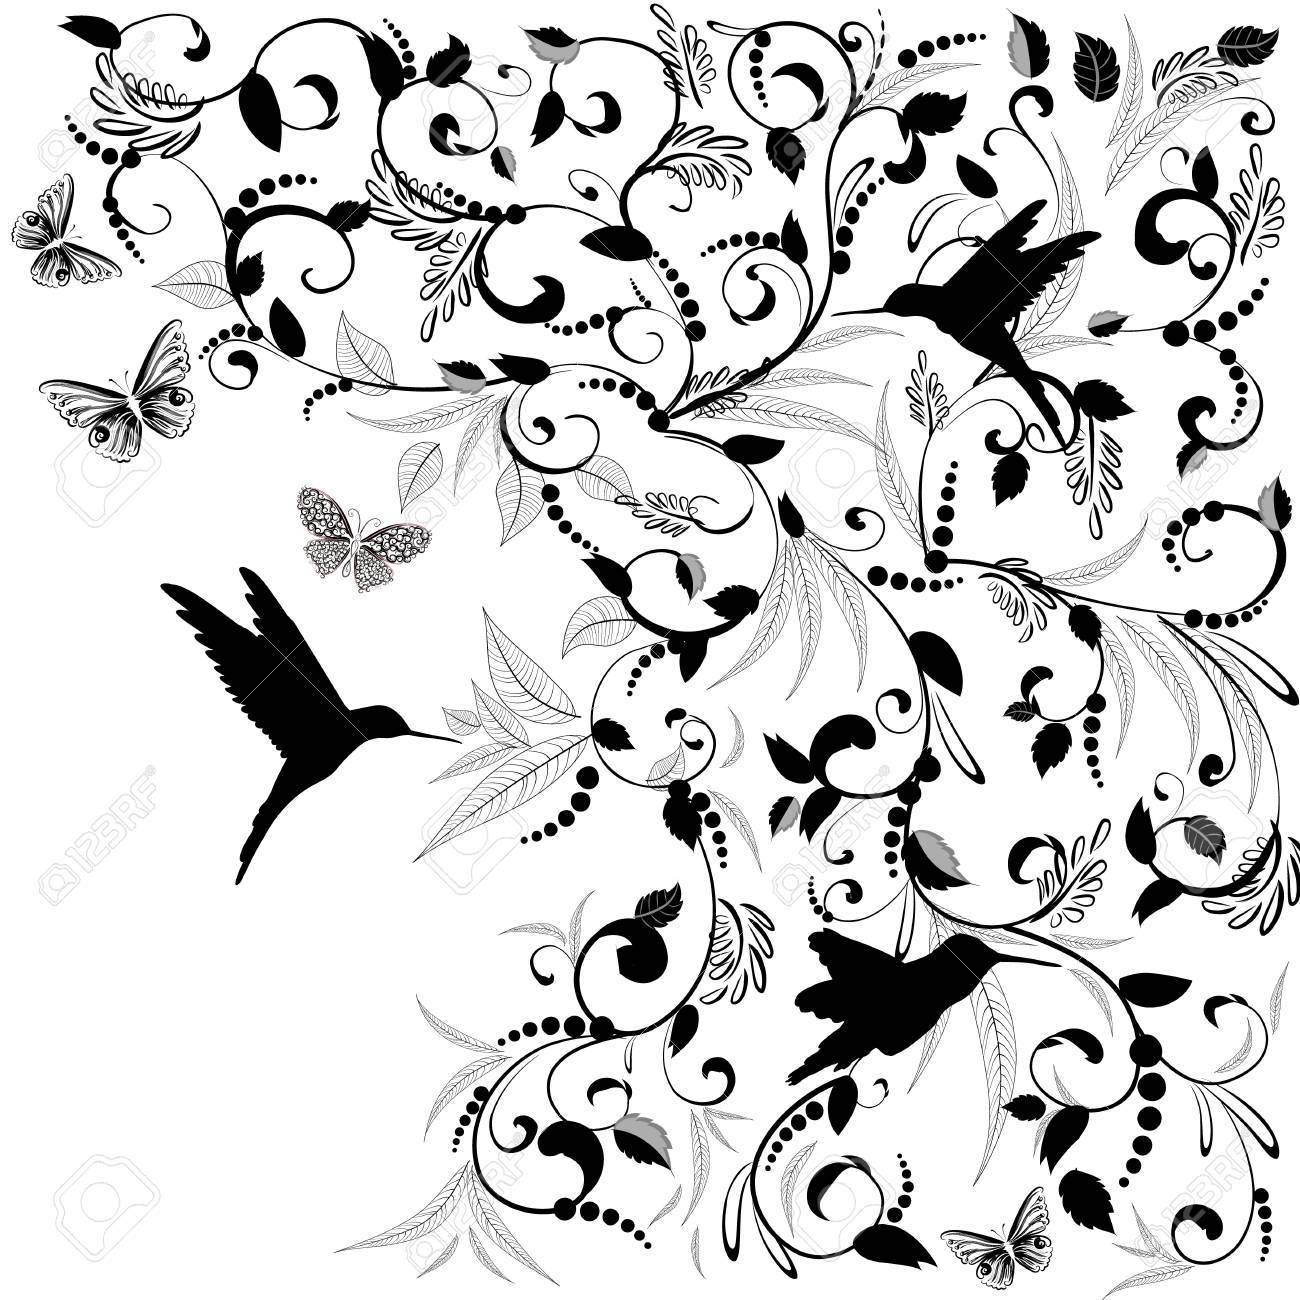 Foliate designs for greetings Stock Vector - 16432737